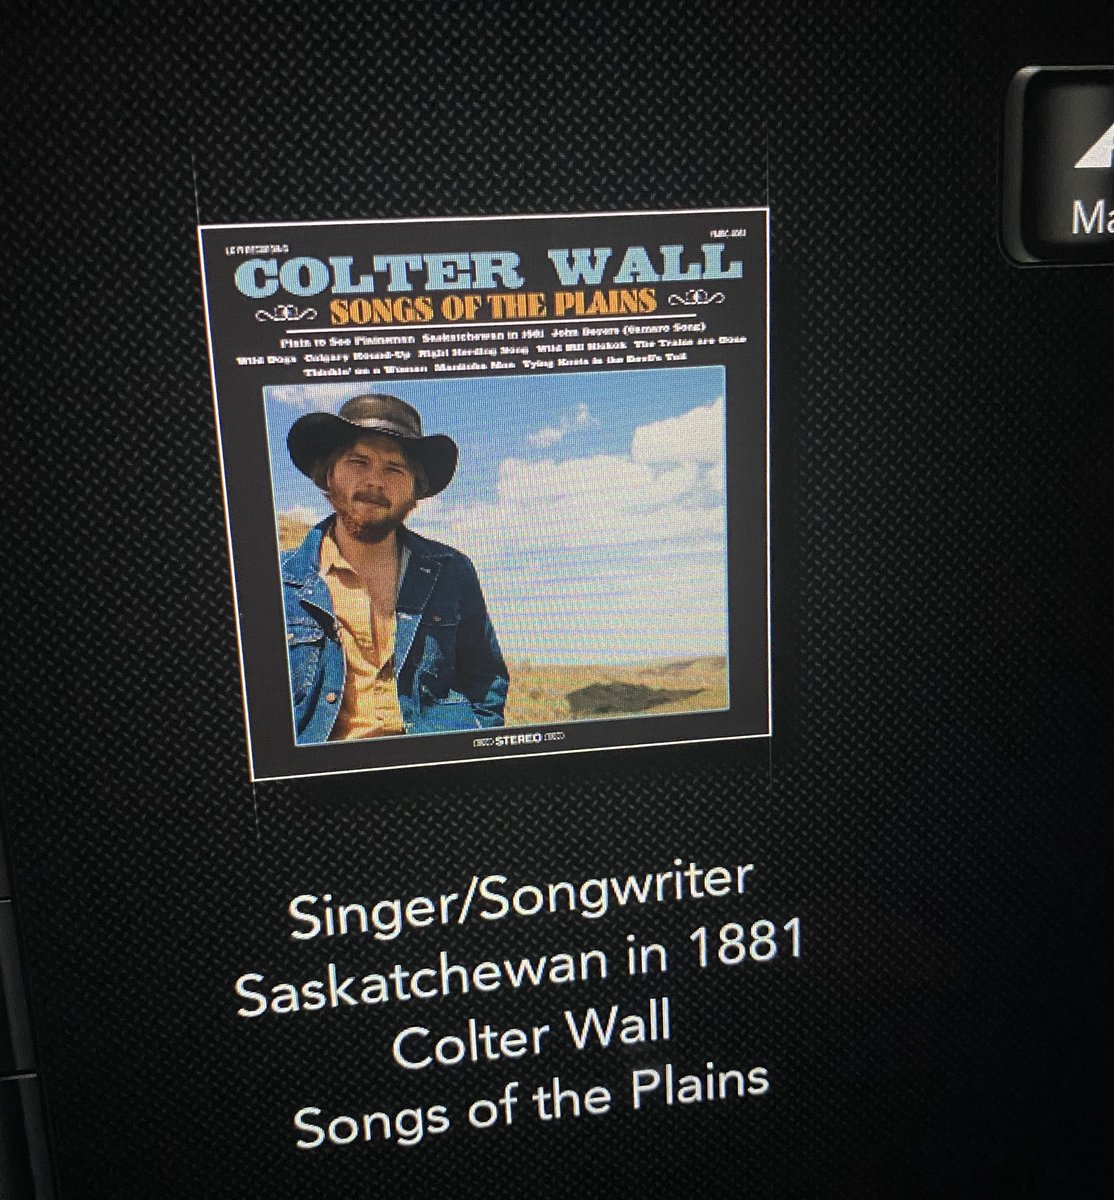 If you're a farmer or a reporter living in Ontario. Have a listen to this tune and the words. A great artist @ColterWall. Also #playbigiron https://t.co/AbA29CxnYM